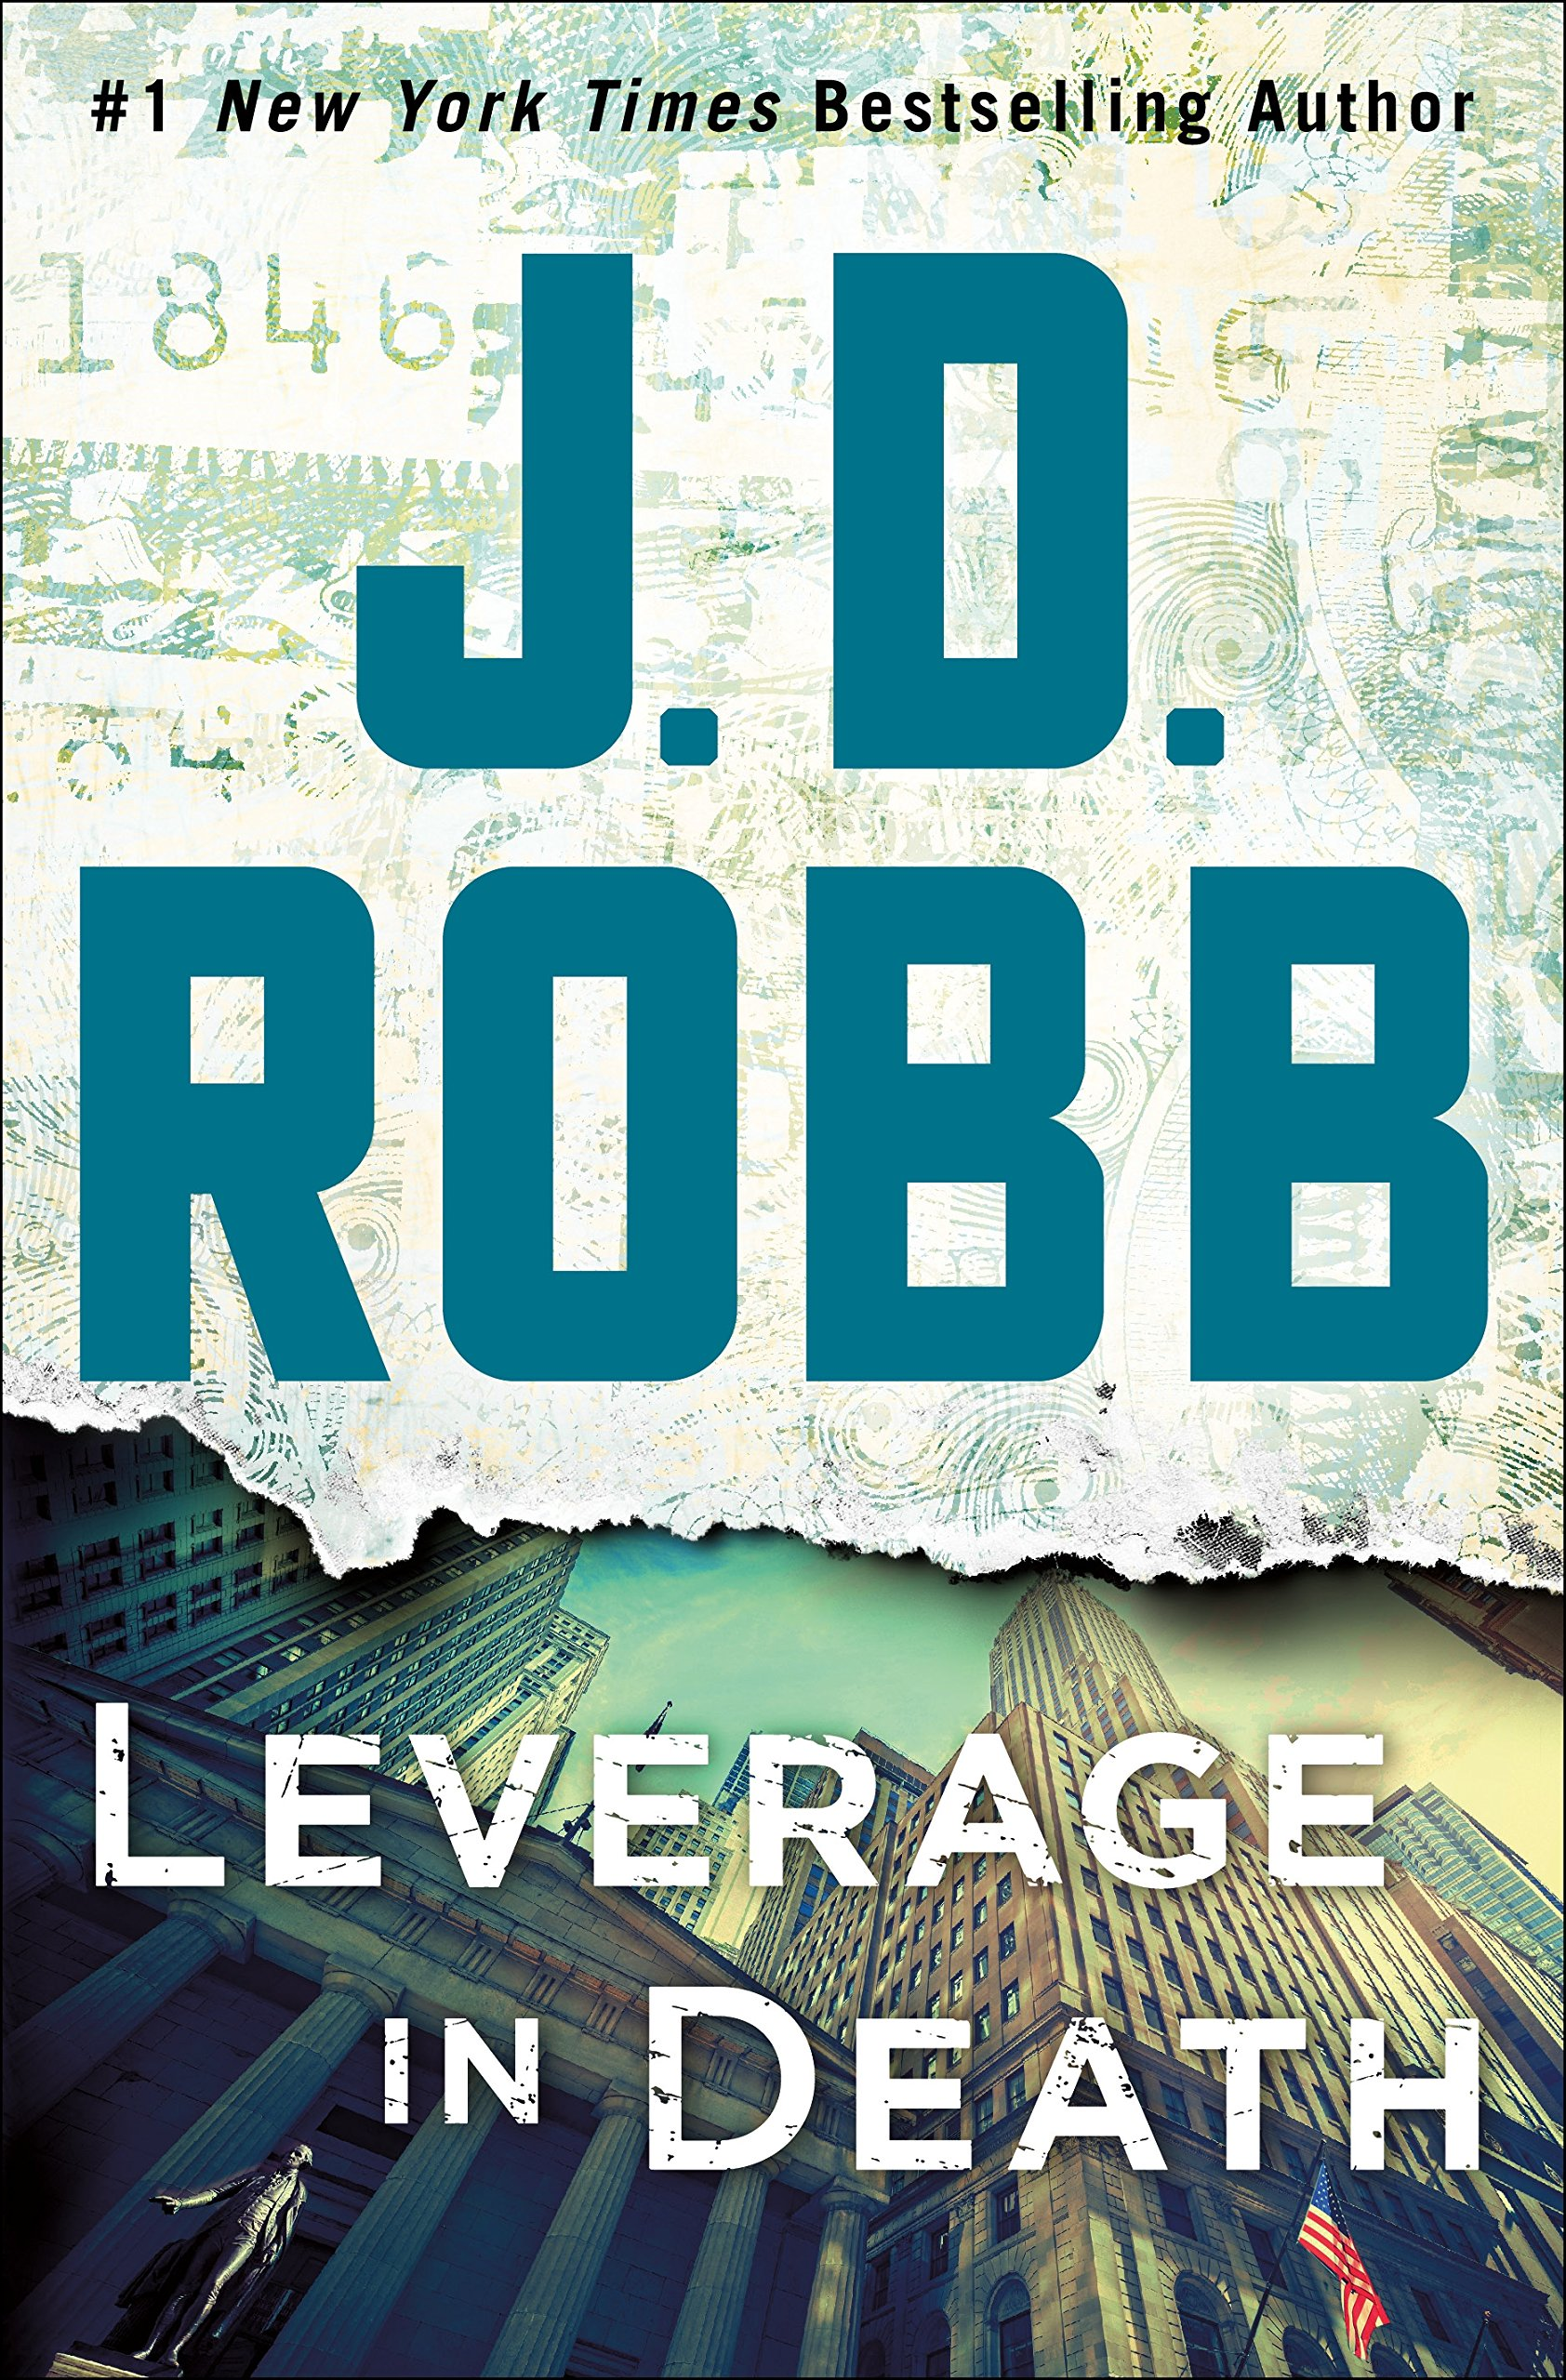 6. Leverage in Death by J. D. Robb - (St. Martin's Press)